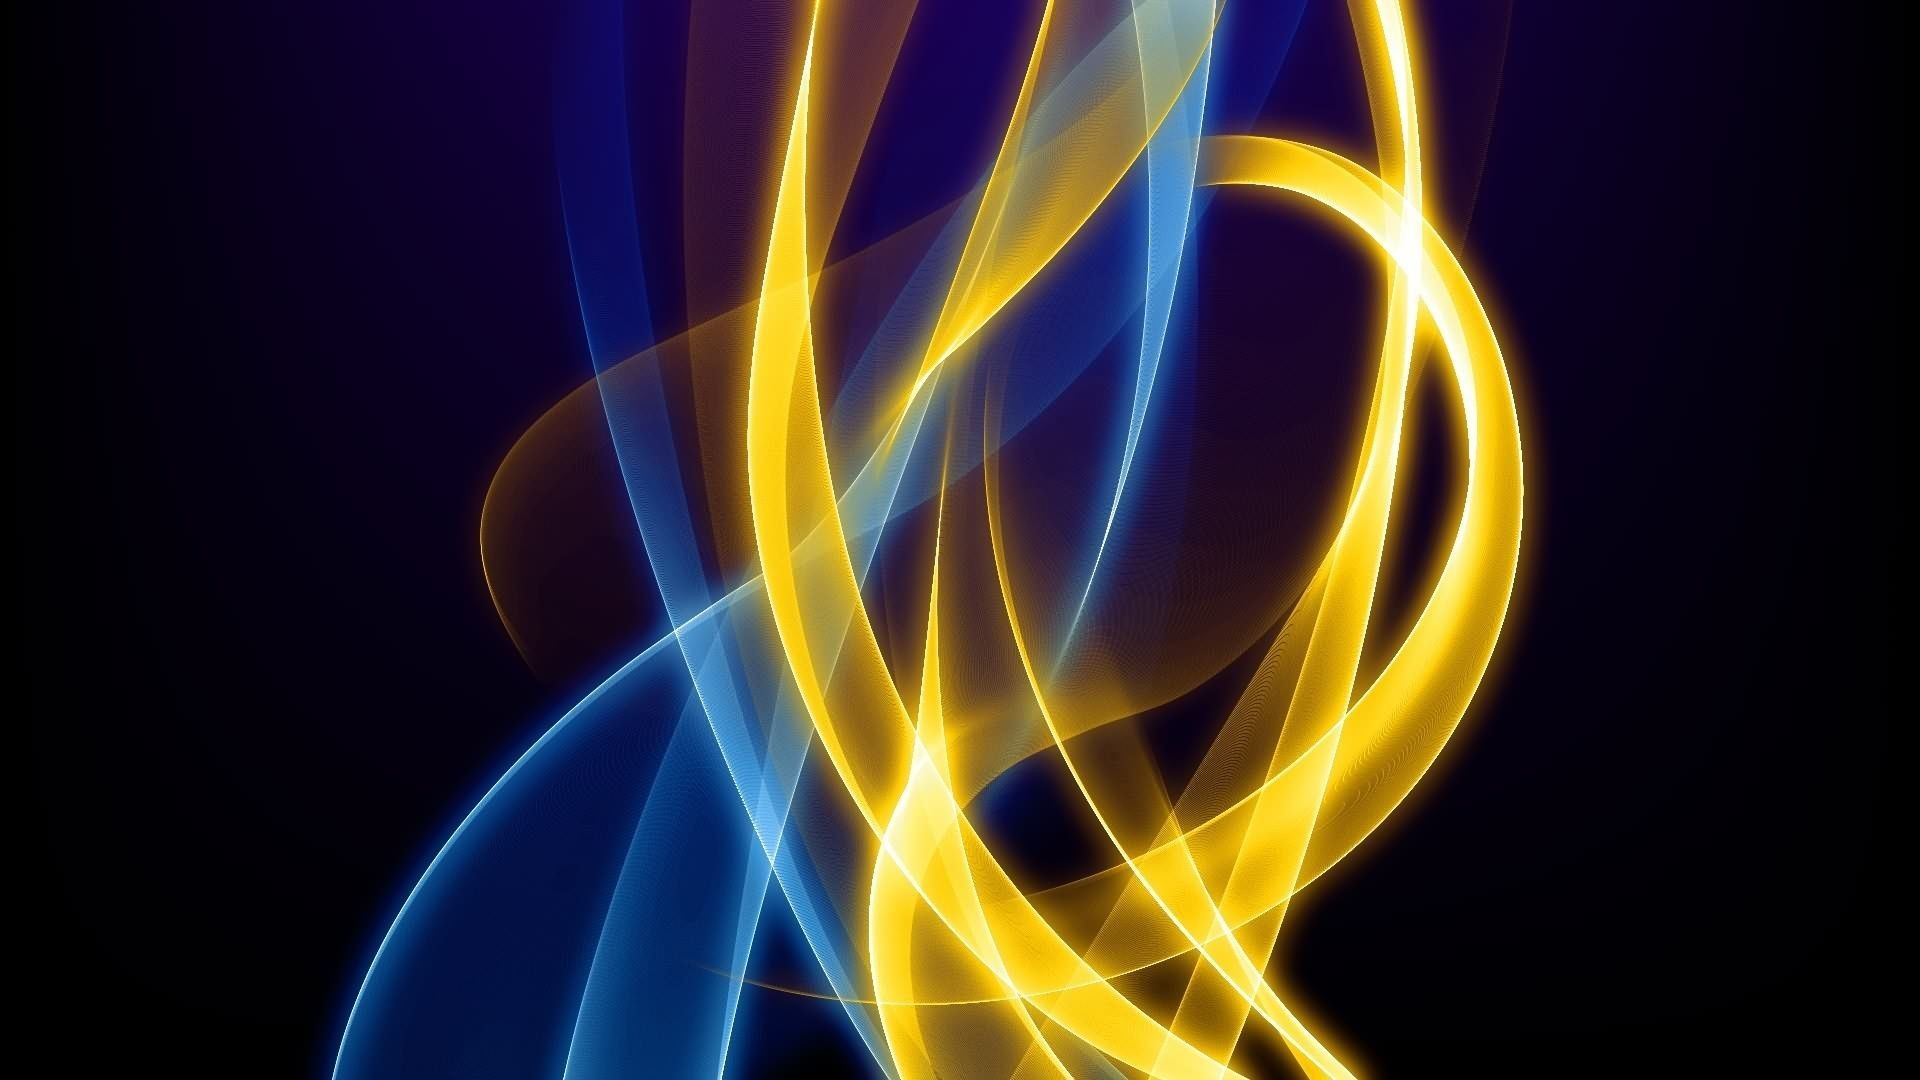 … Gold And Blue Background Wallpaper …